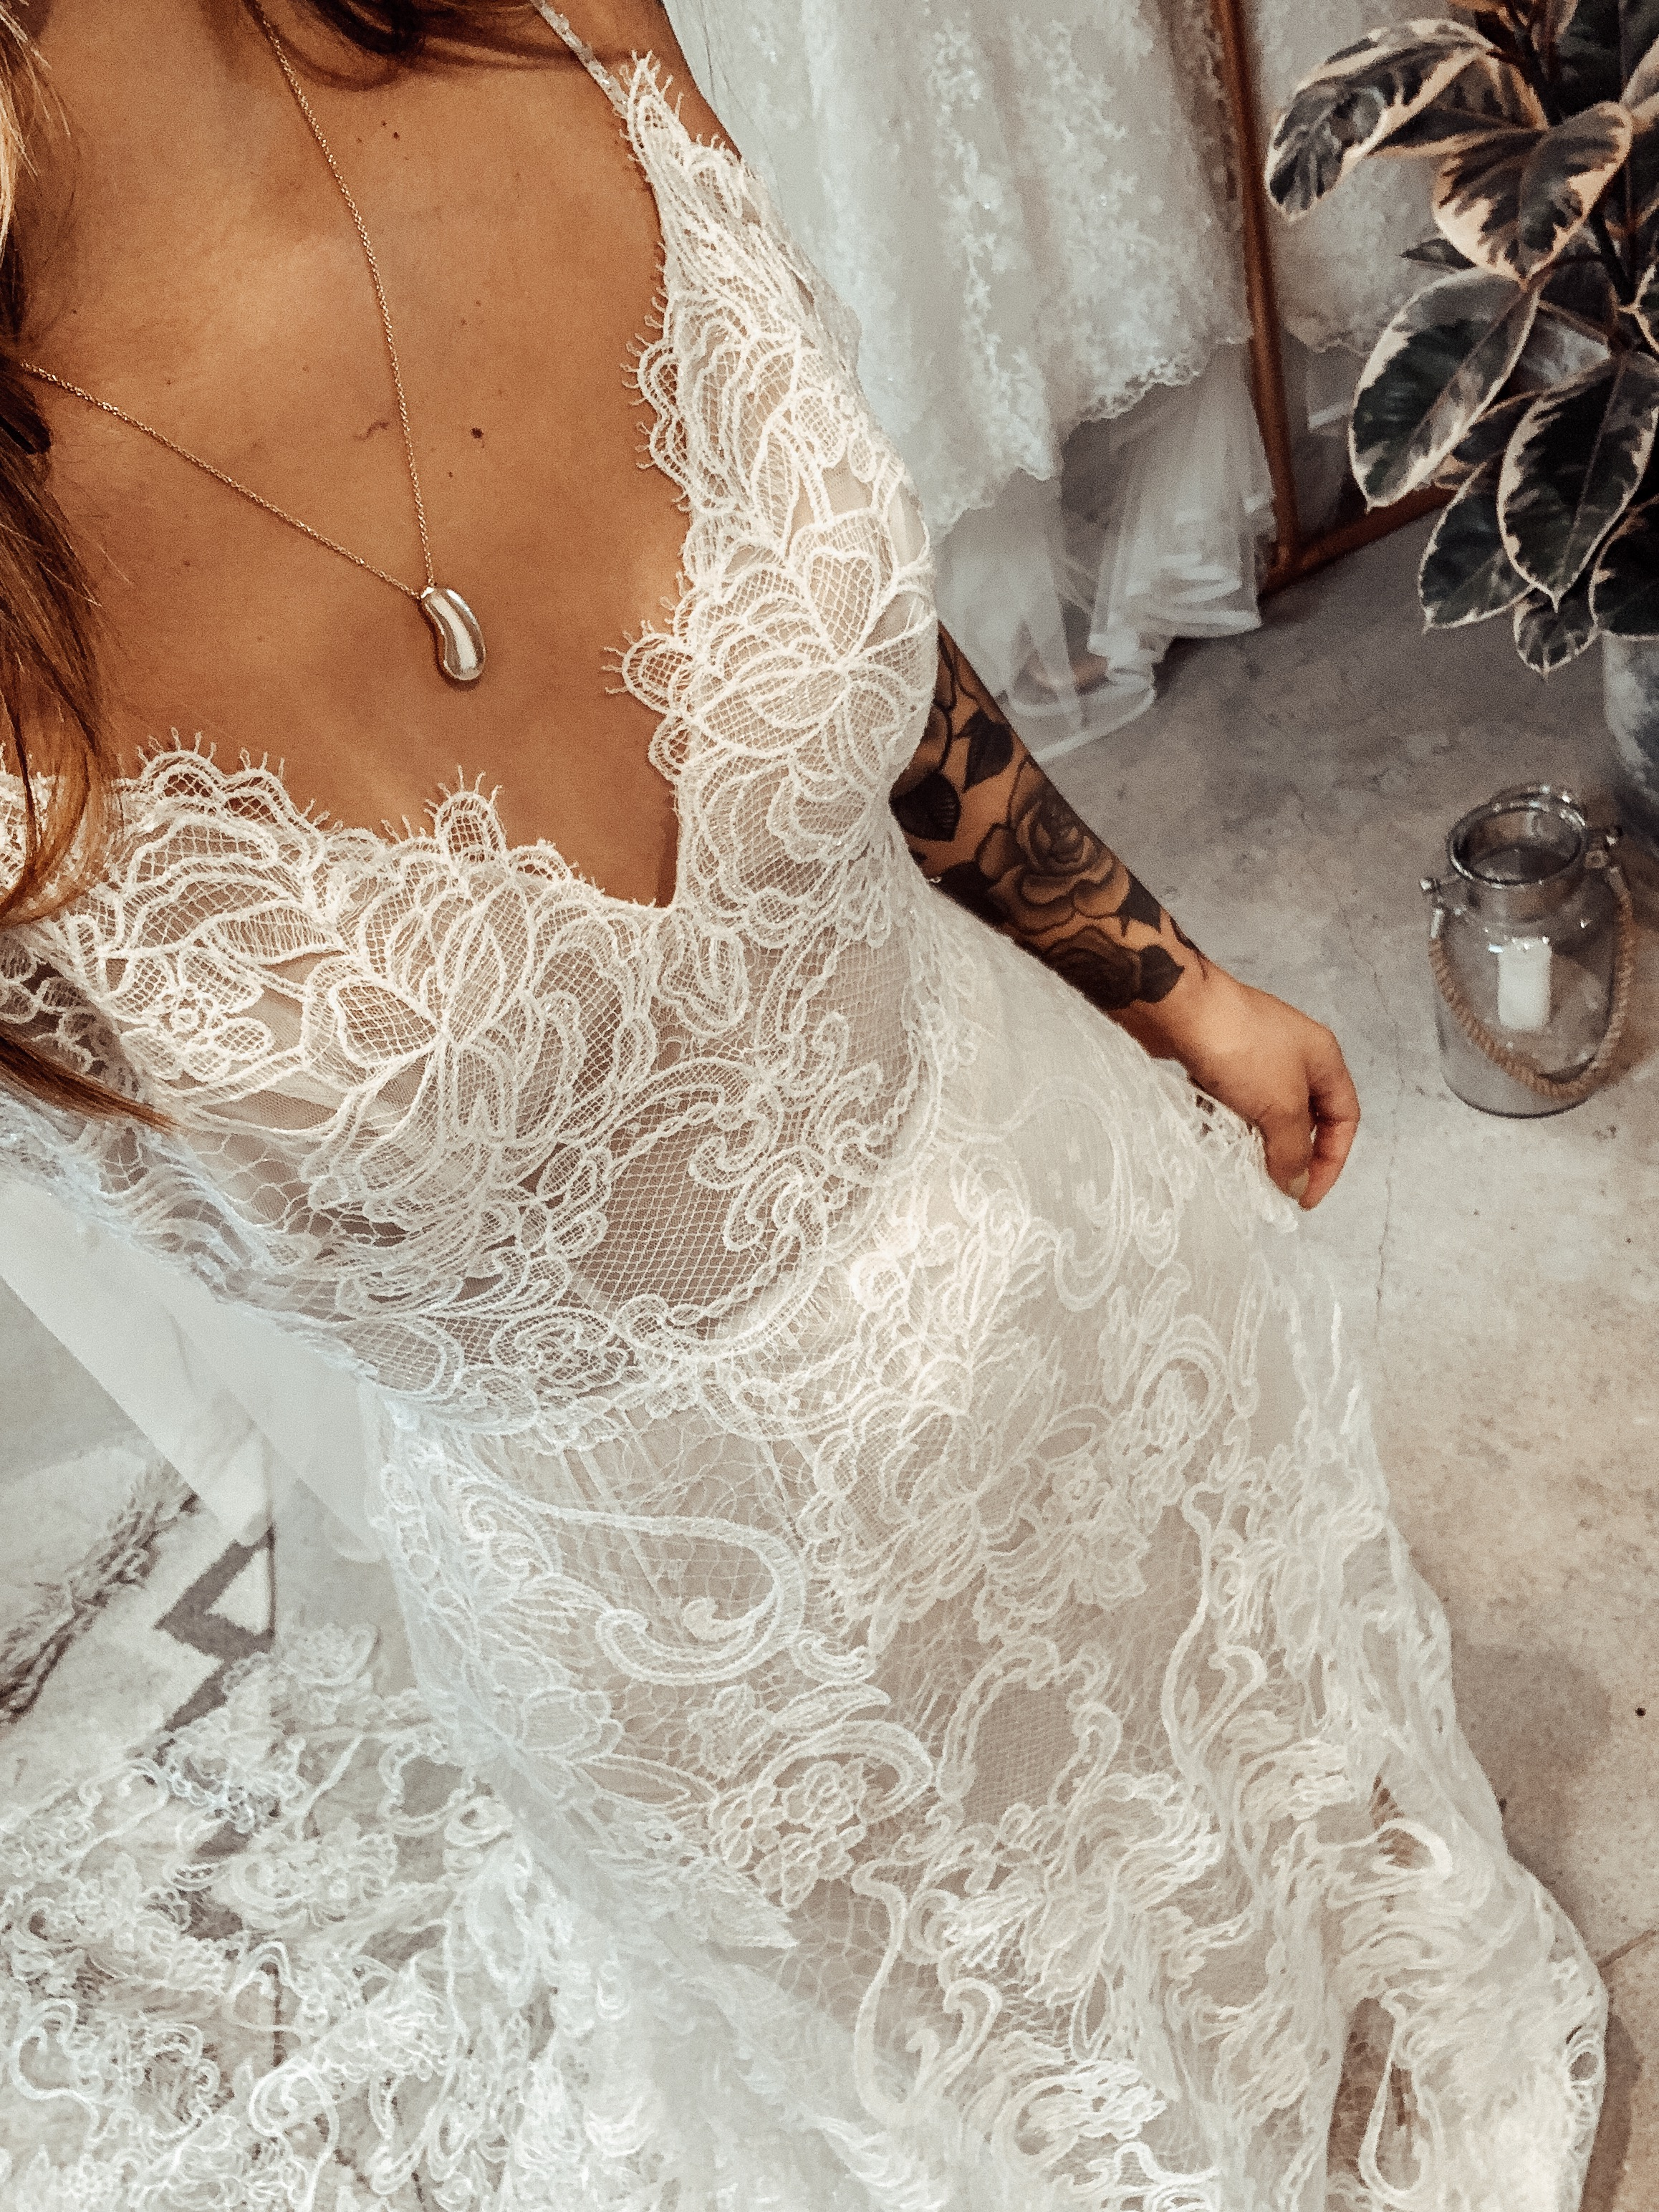 THE DELICATE LACEThis lace was on another level. So soft, so delicate and romantic. The perfect dress for a boho wedding. -